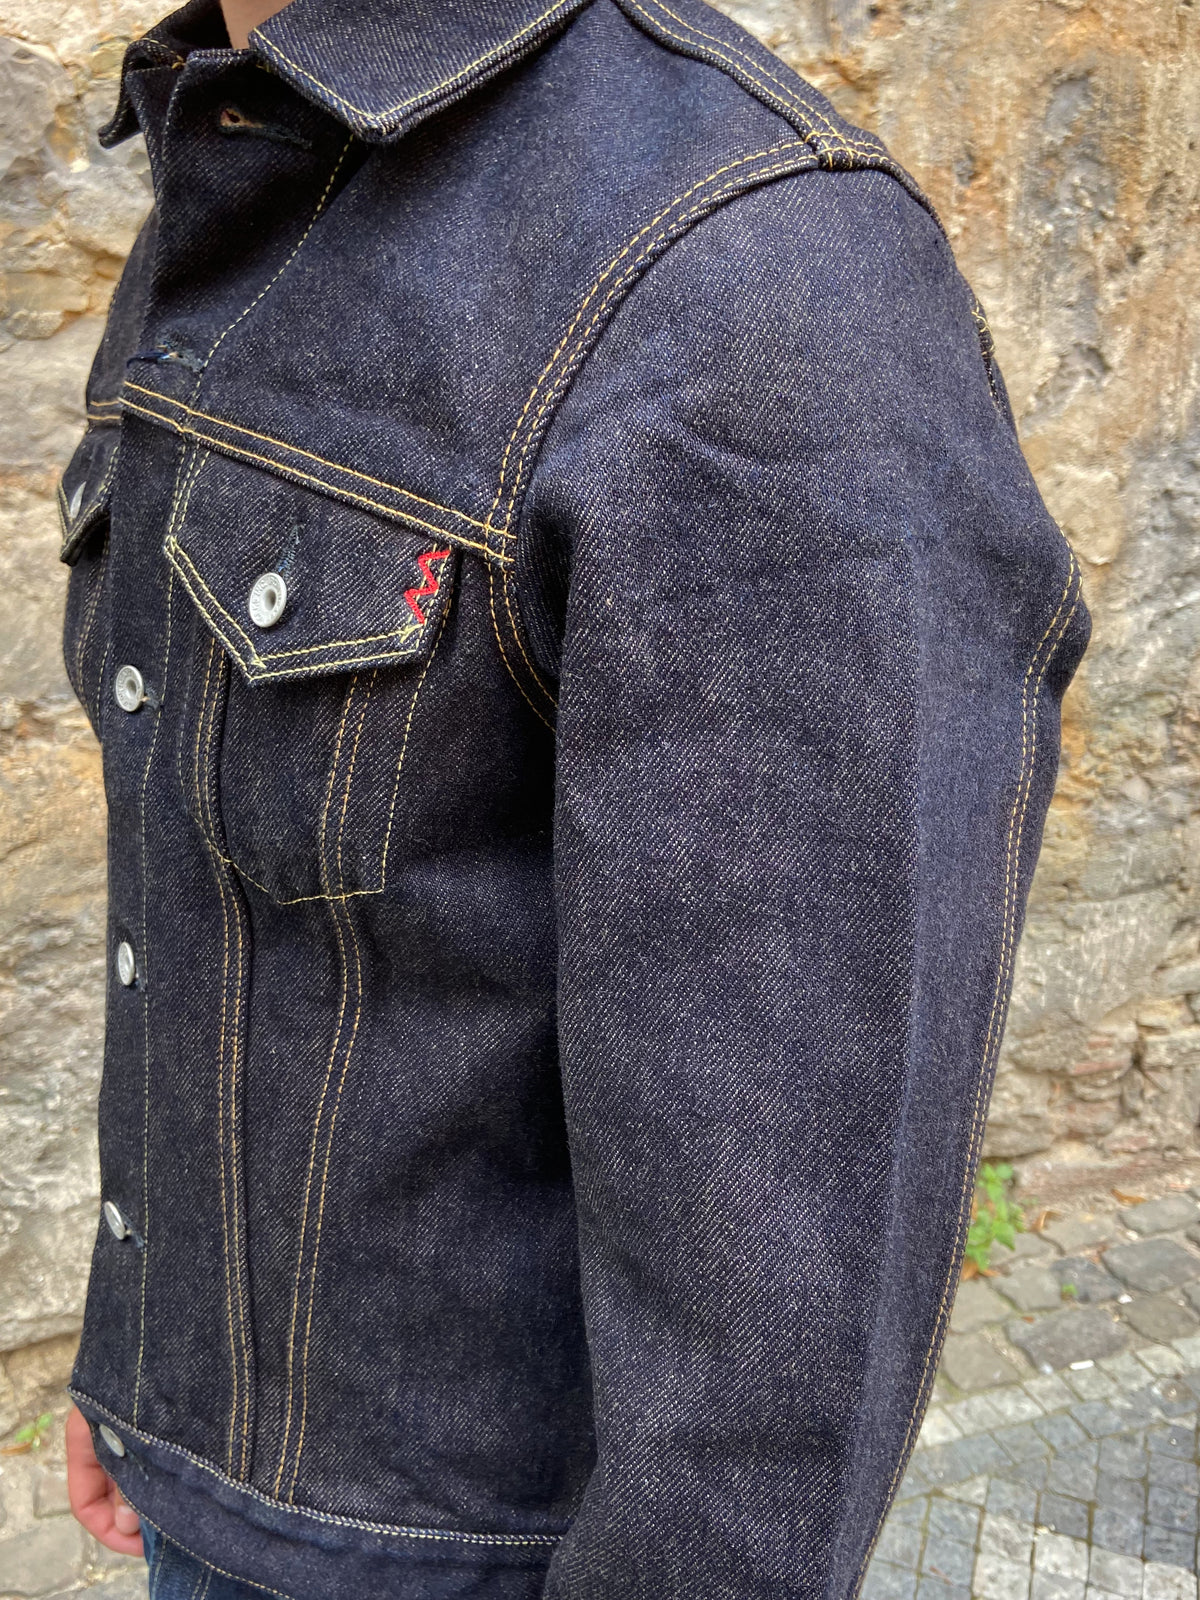 IH-526J-22 22oz Selvedge Denim Type III Jacket - Indigo